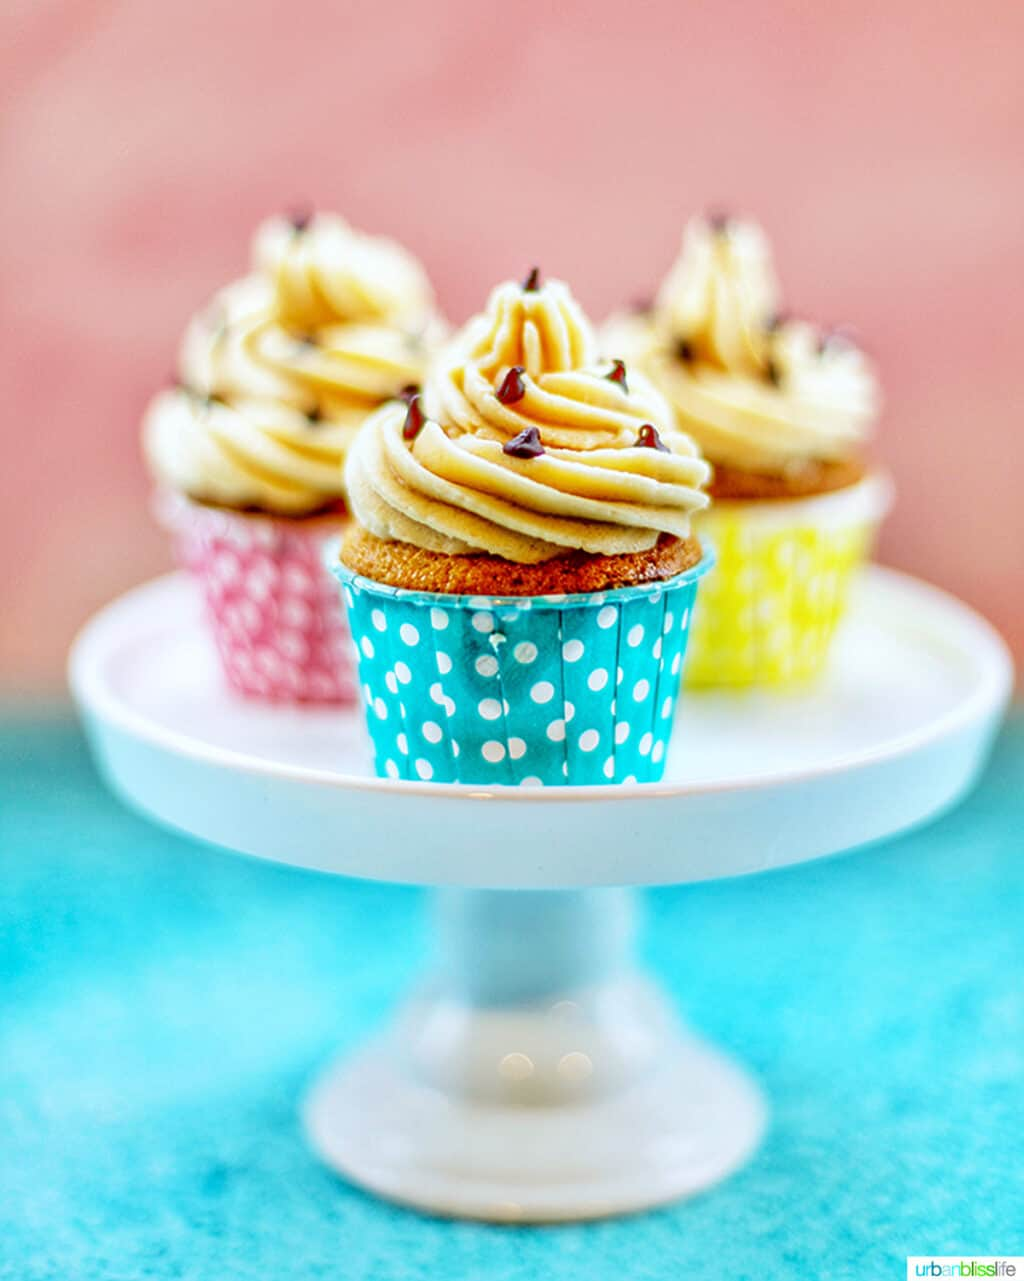 trio of chocolate chip cupcakes with cookie dough frosting in colorful polka dot baking cups on a white pedestal